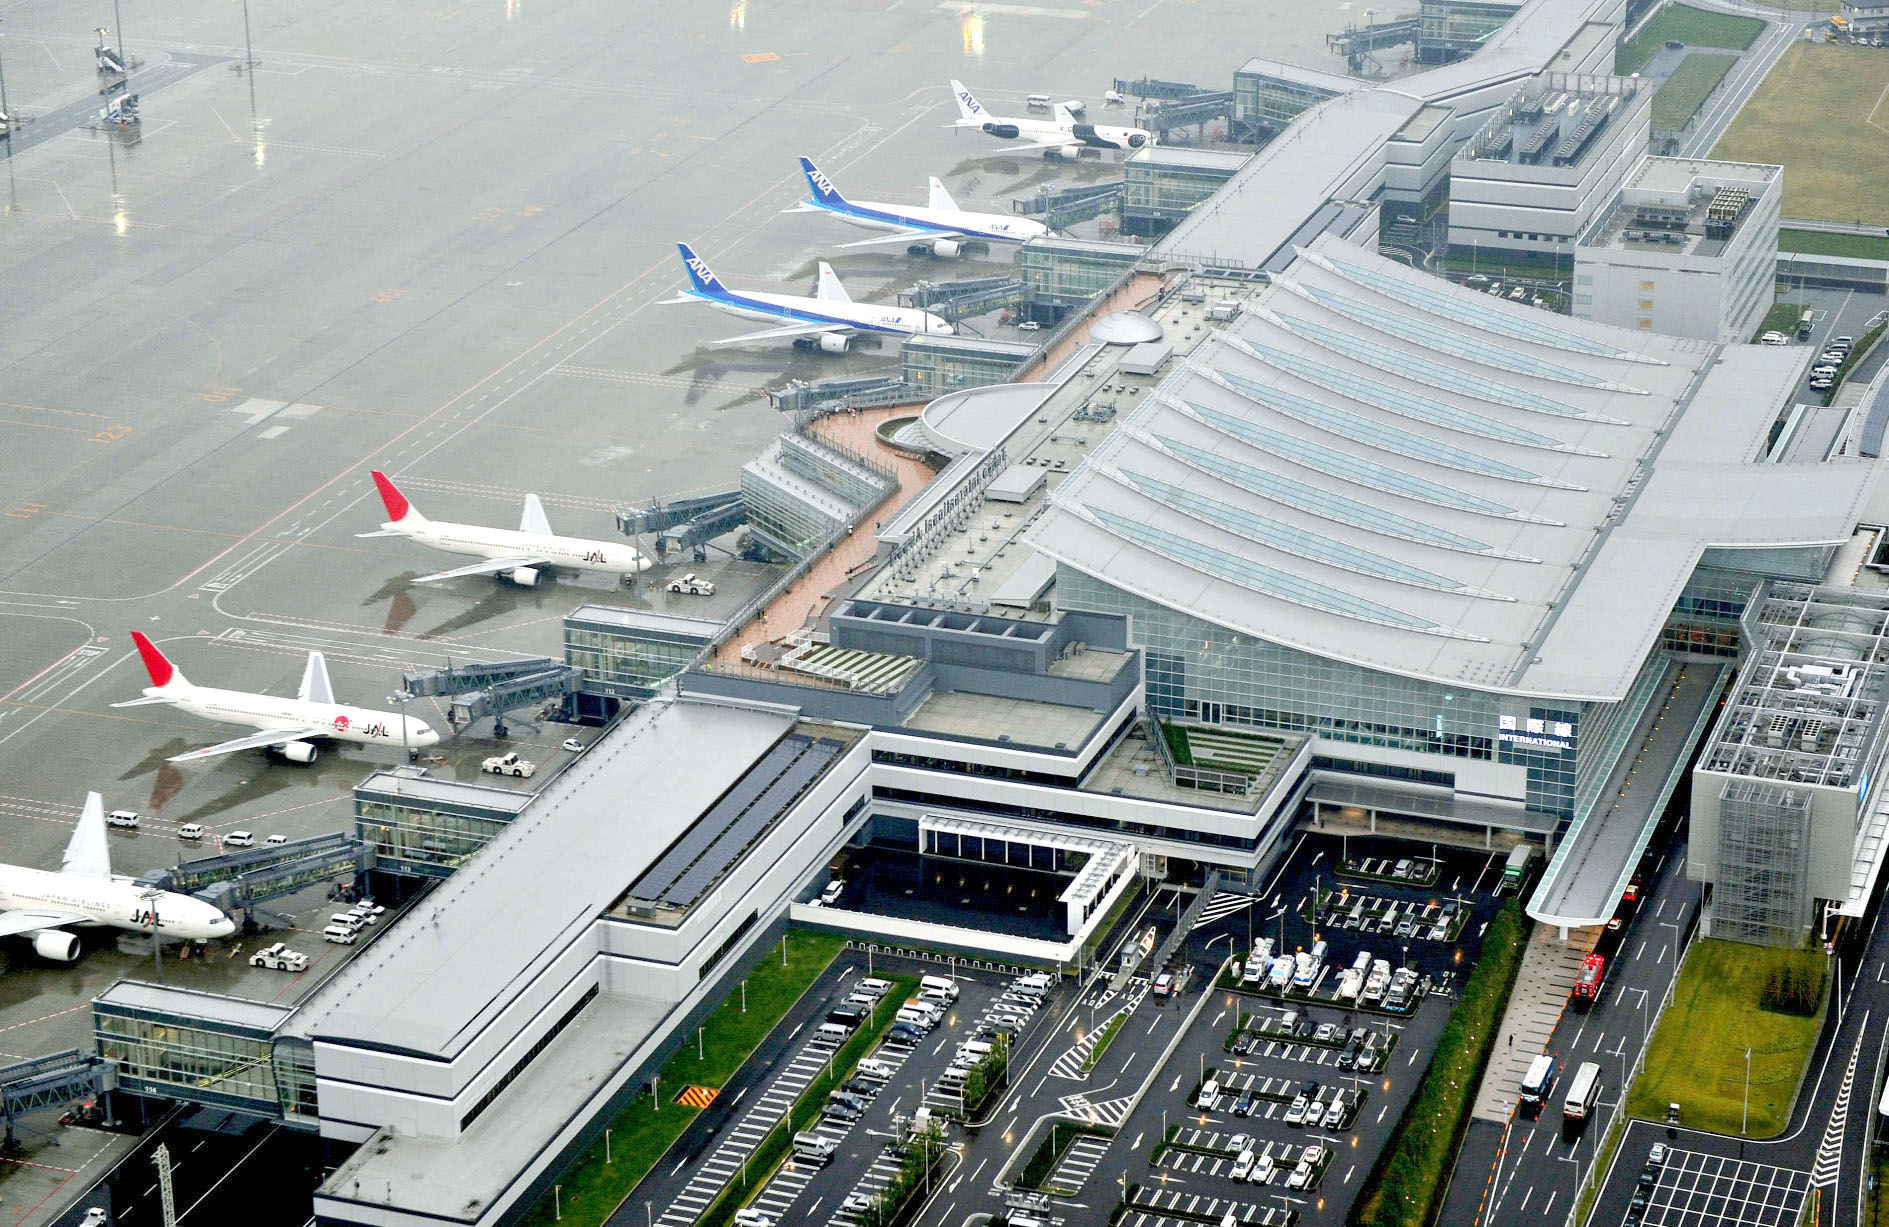 Prominent Top Ten Biggest Airports in the World